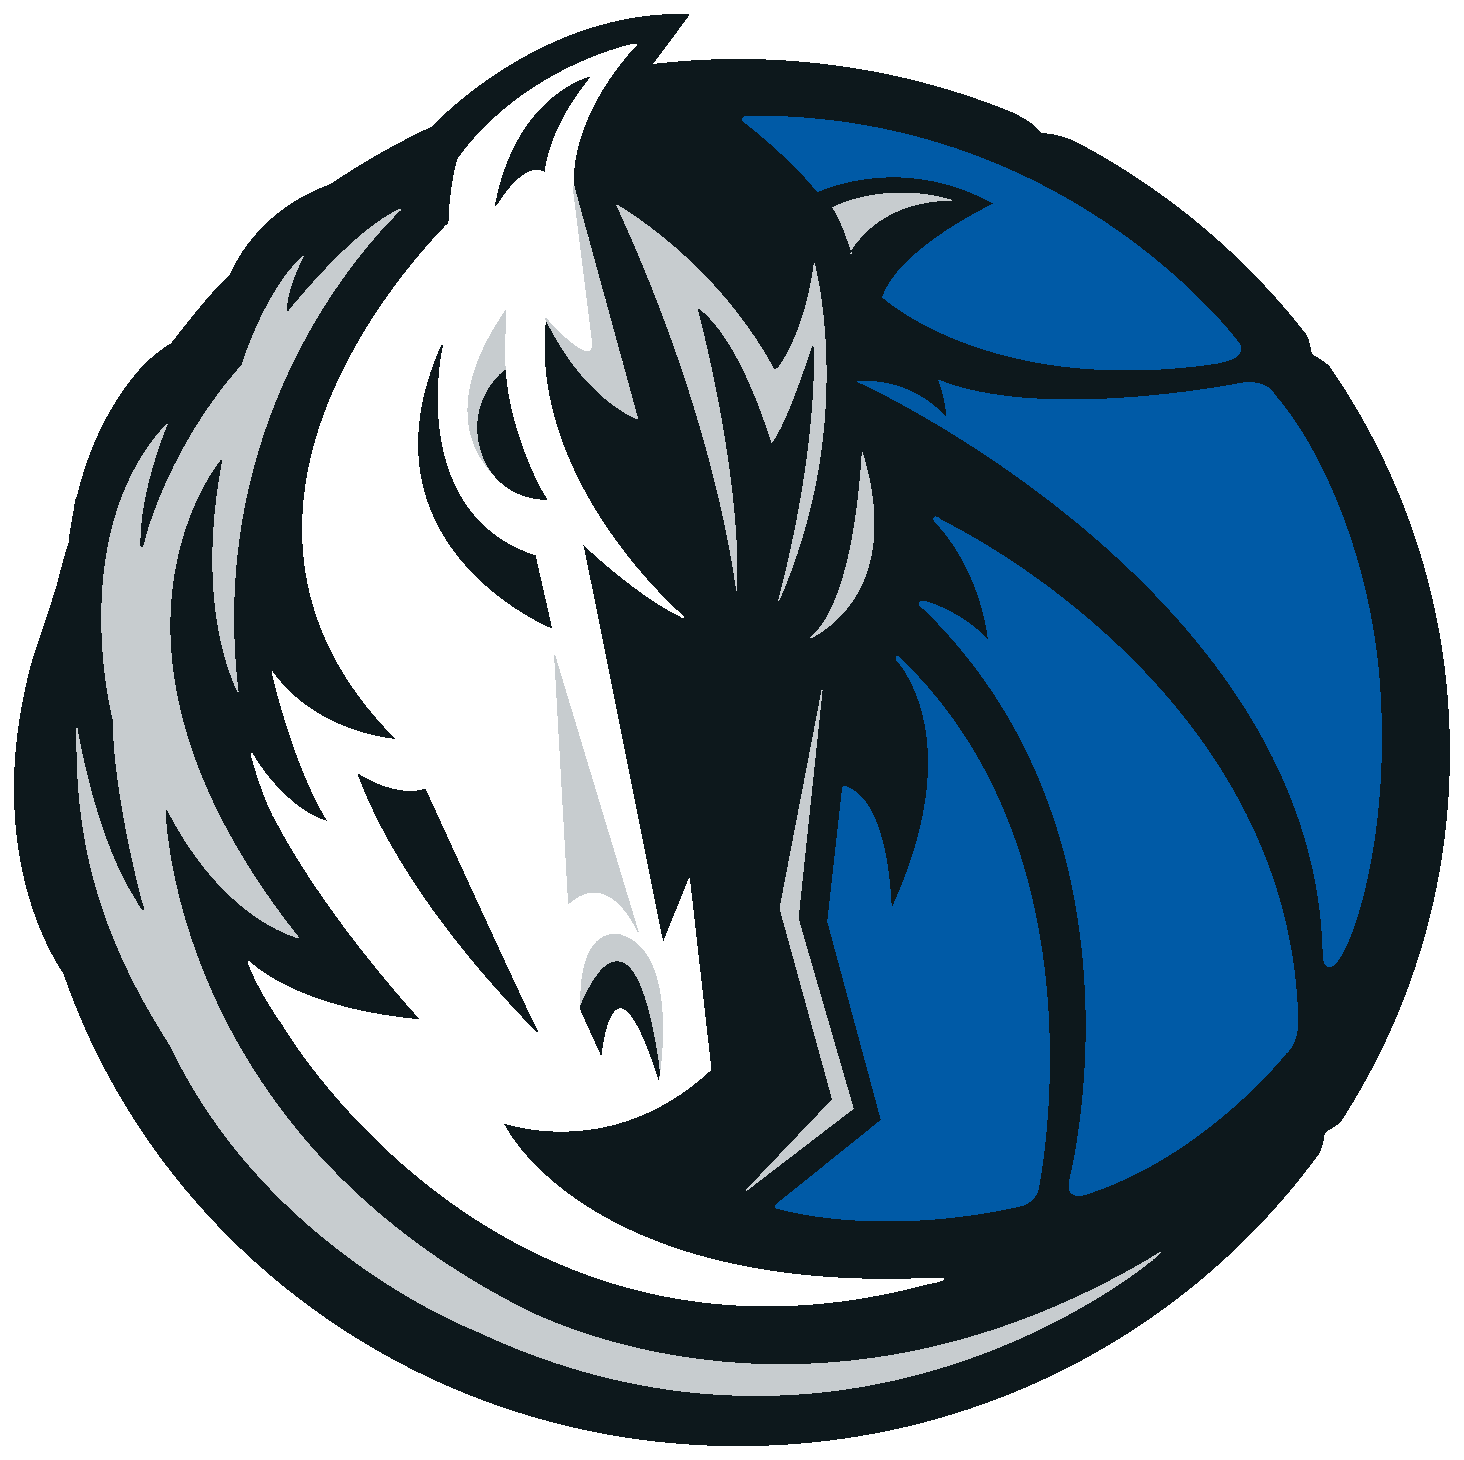 1464x1460 Dallas Mavericks Logo Vector Eps Free Download, Logo